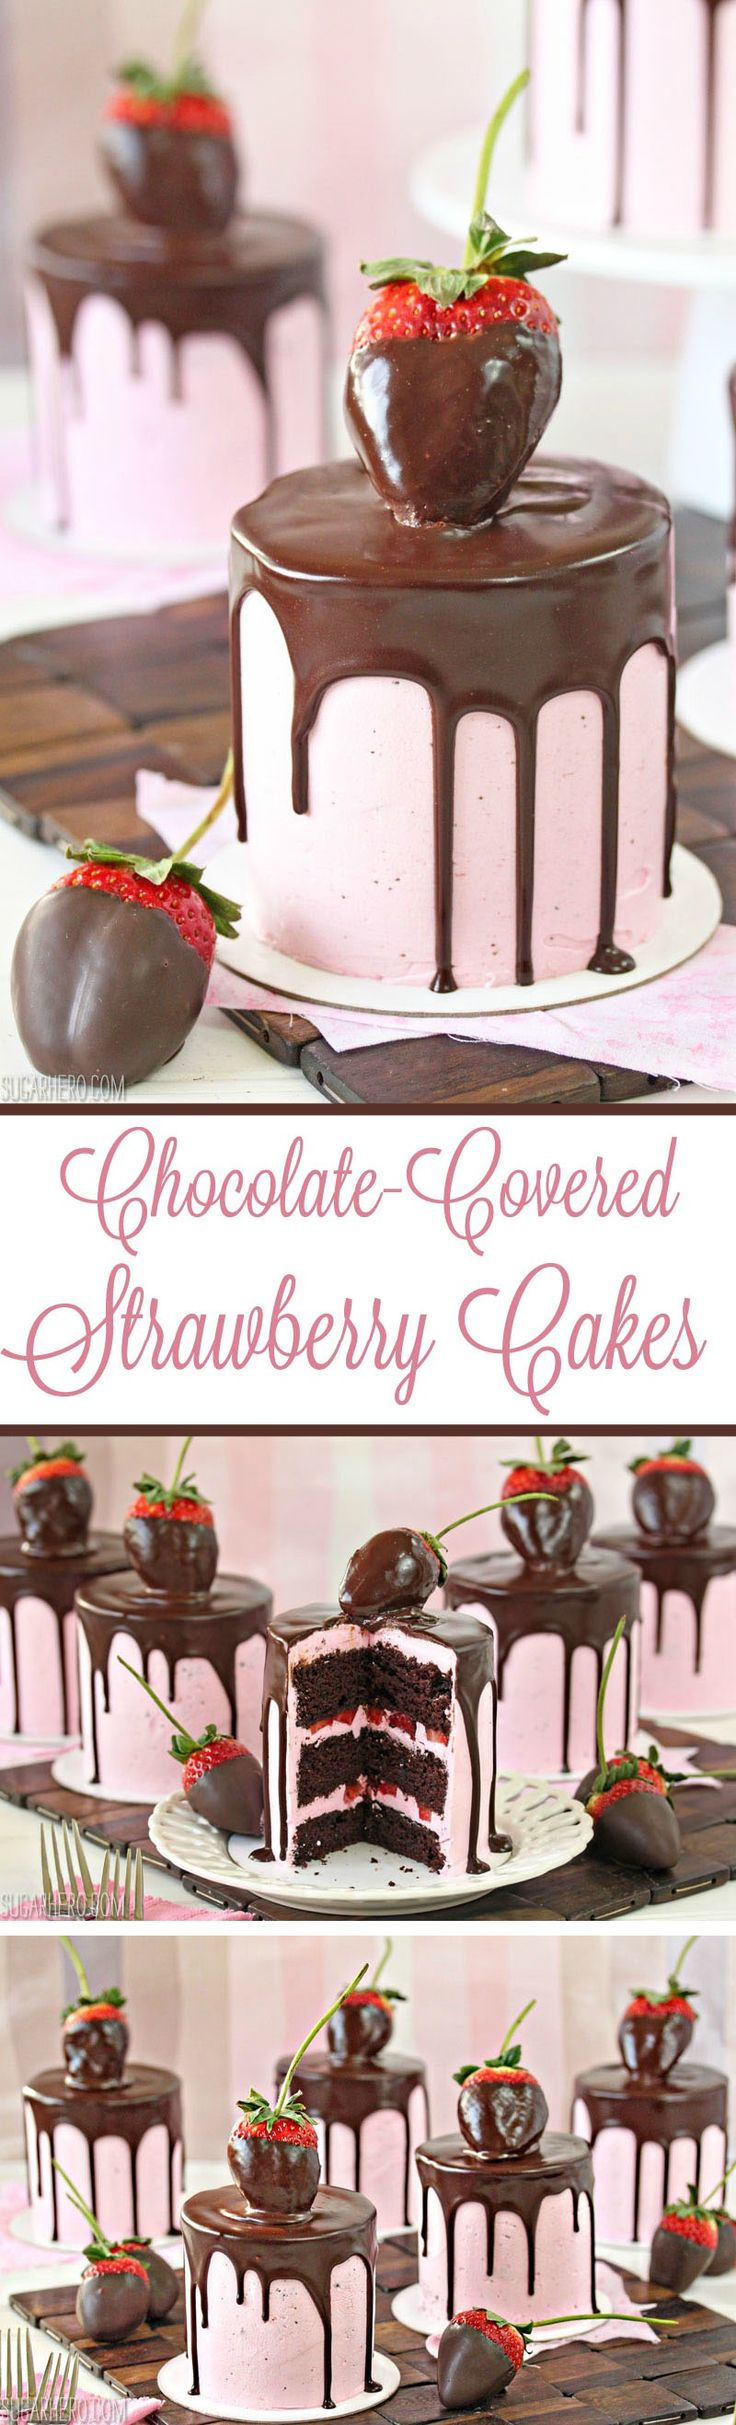 Chocolate-Covered Strawberry Cakes, with chocolate cake and fresh strawberry buttercream! | From SugarHero.com